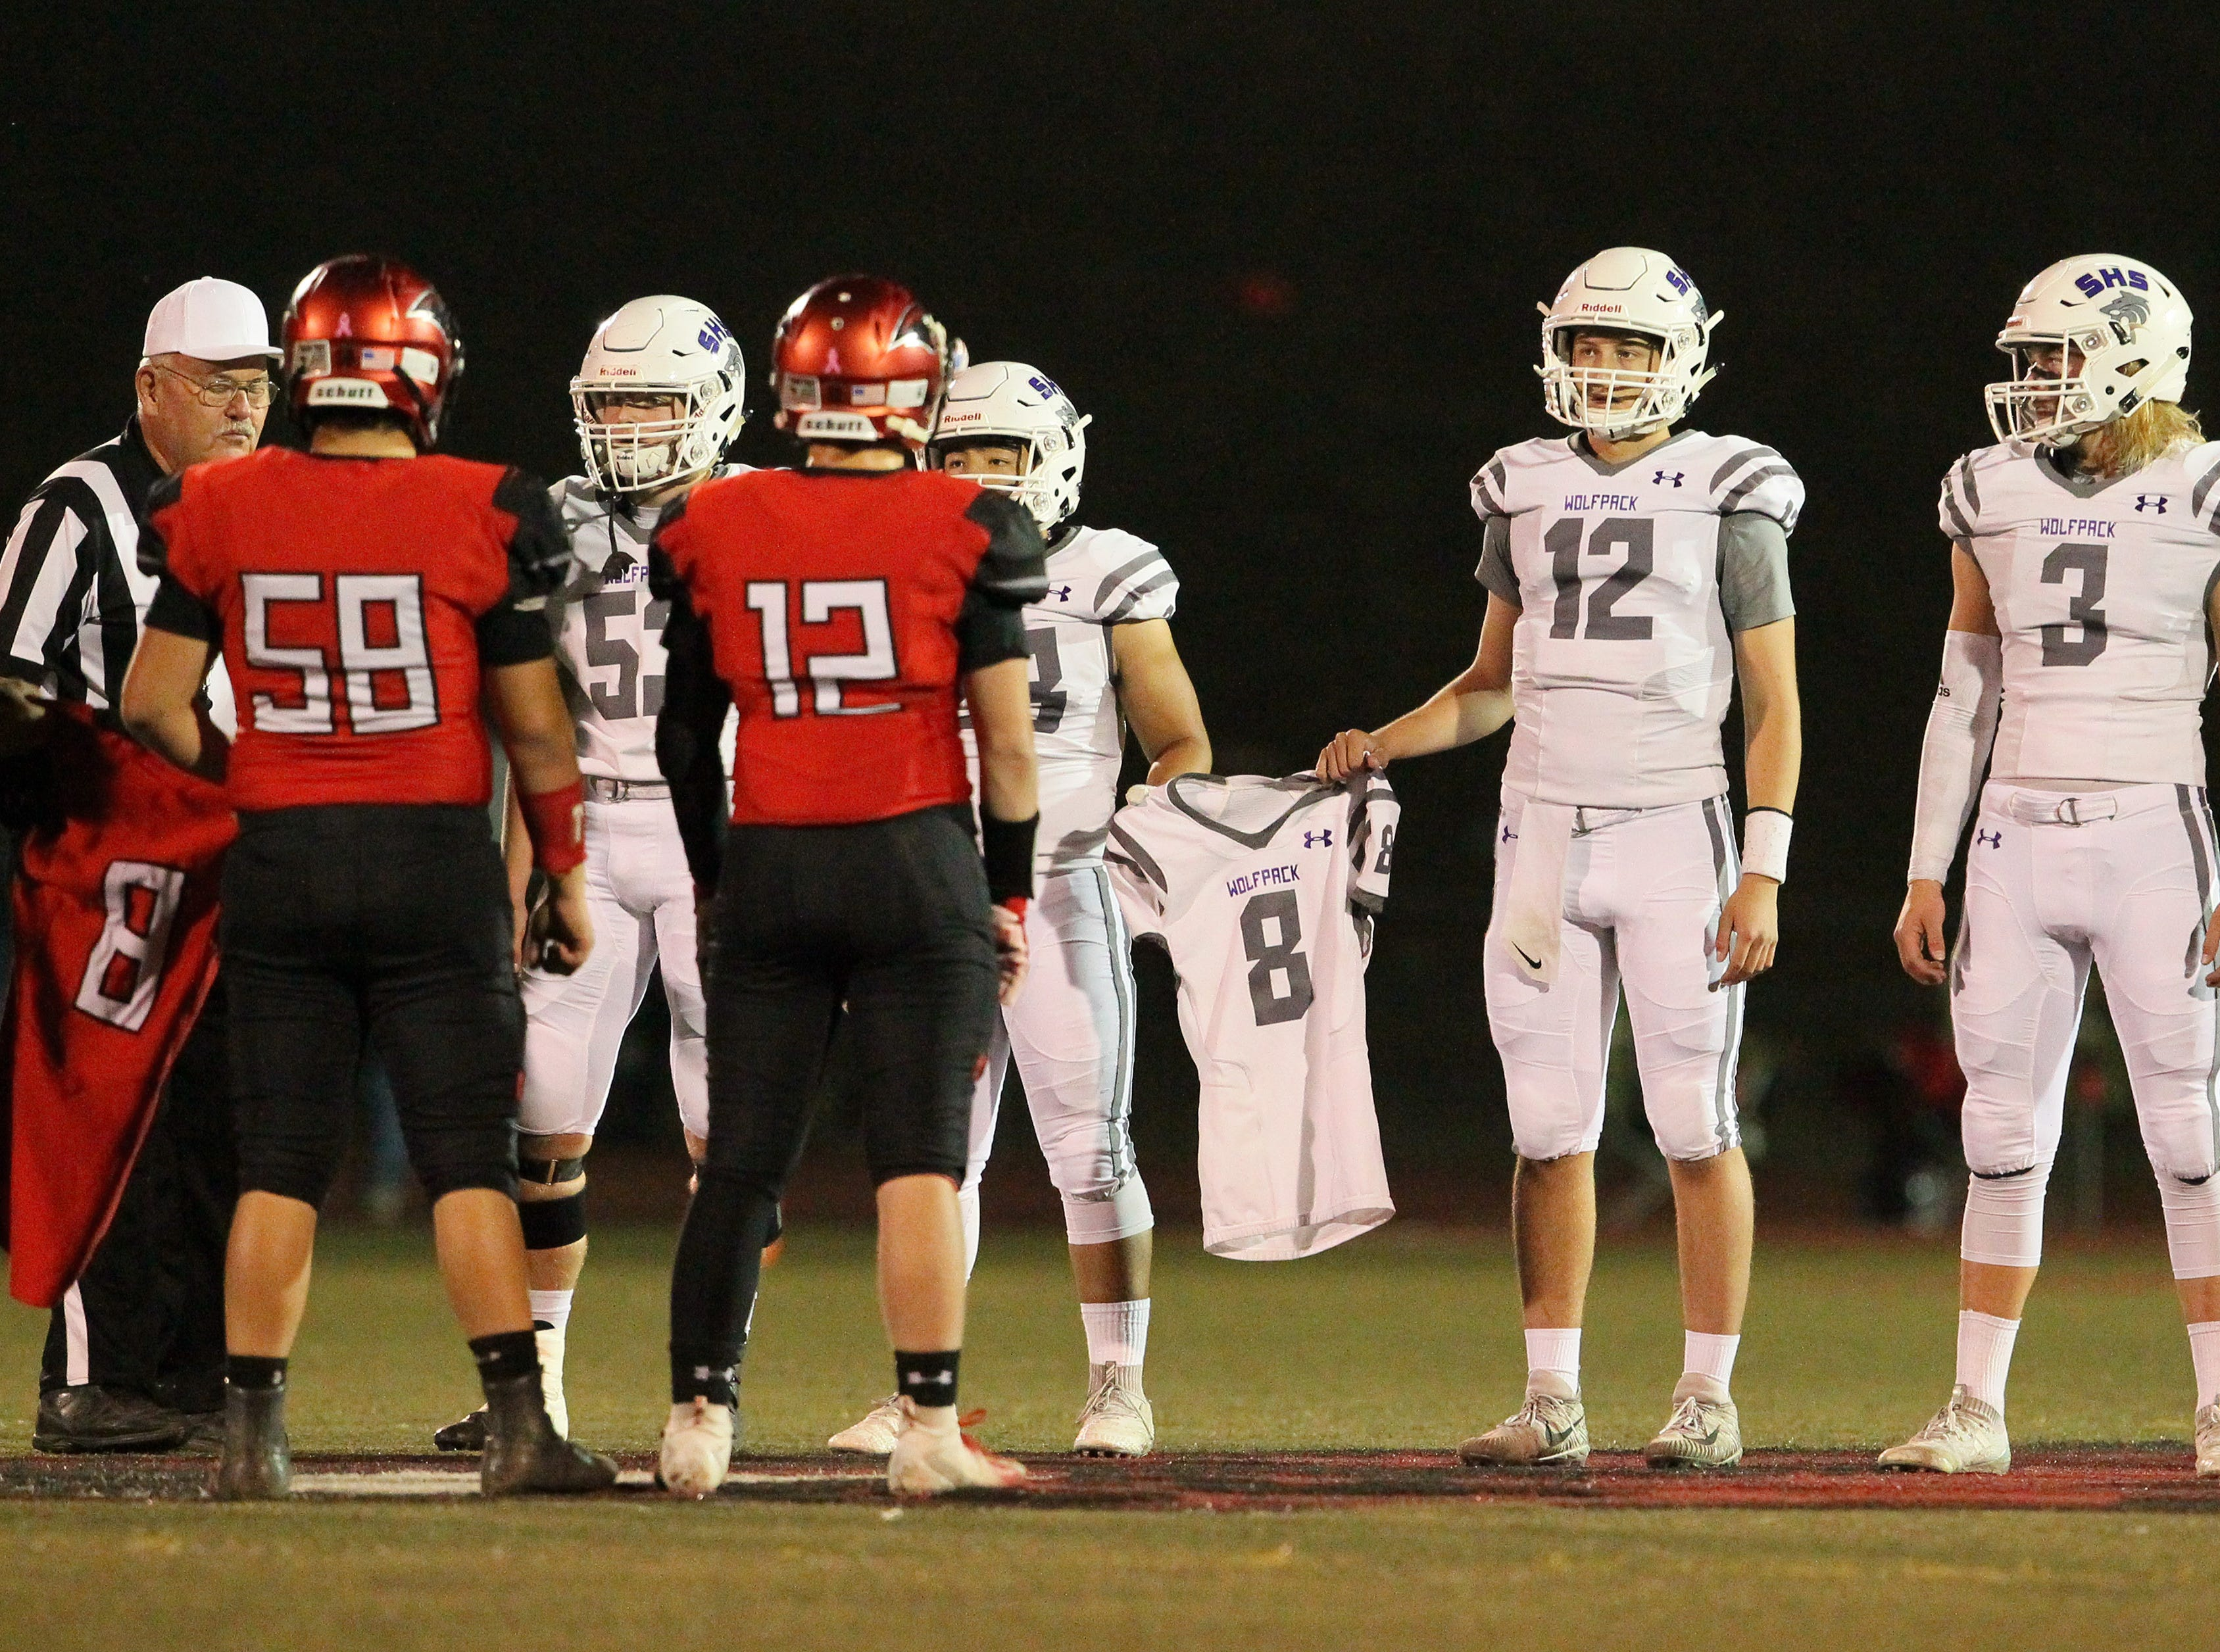 Shasta and Foothill carry their No. 8 jerseys to midfield before the game to honor West Valley player Tyson Wacker who died on Monday, Oct. 22 after a crash. Both teams agreed to retire their No. 8 jerseys for the rest of the season.